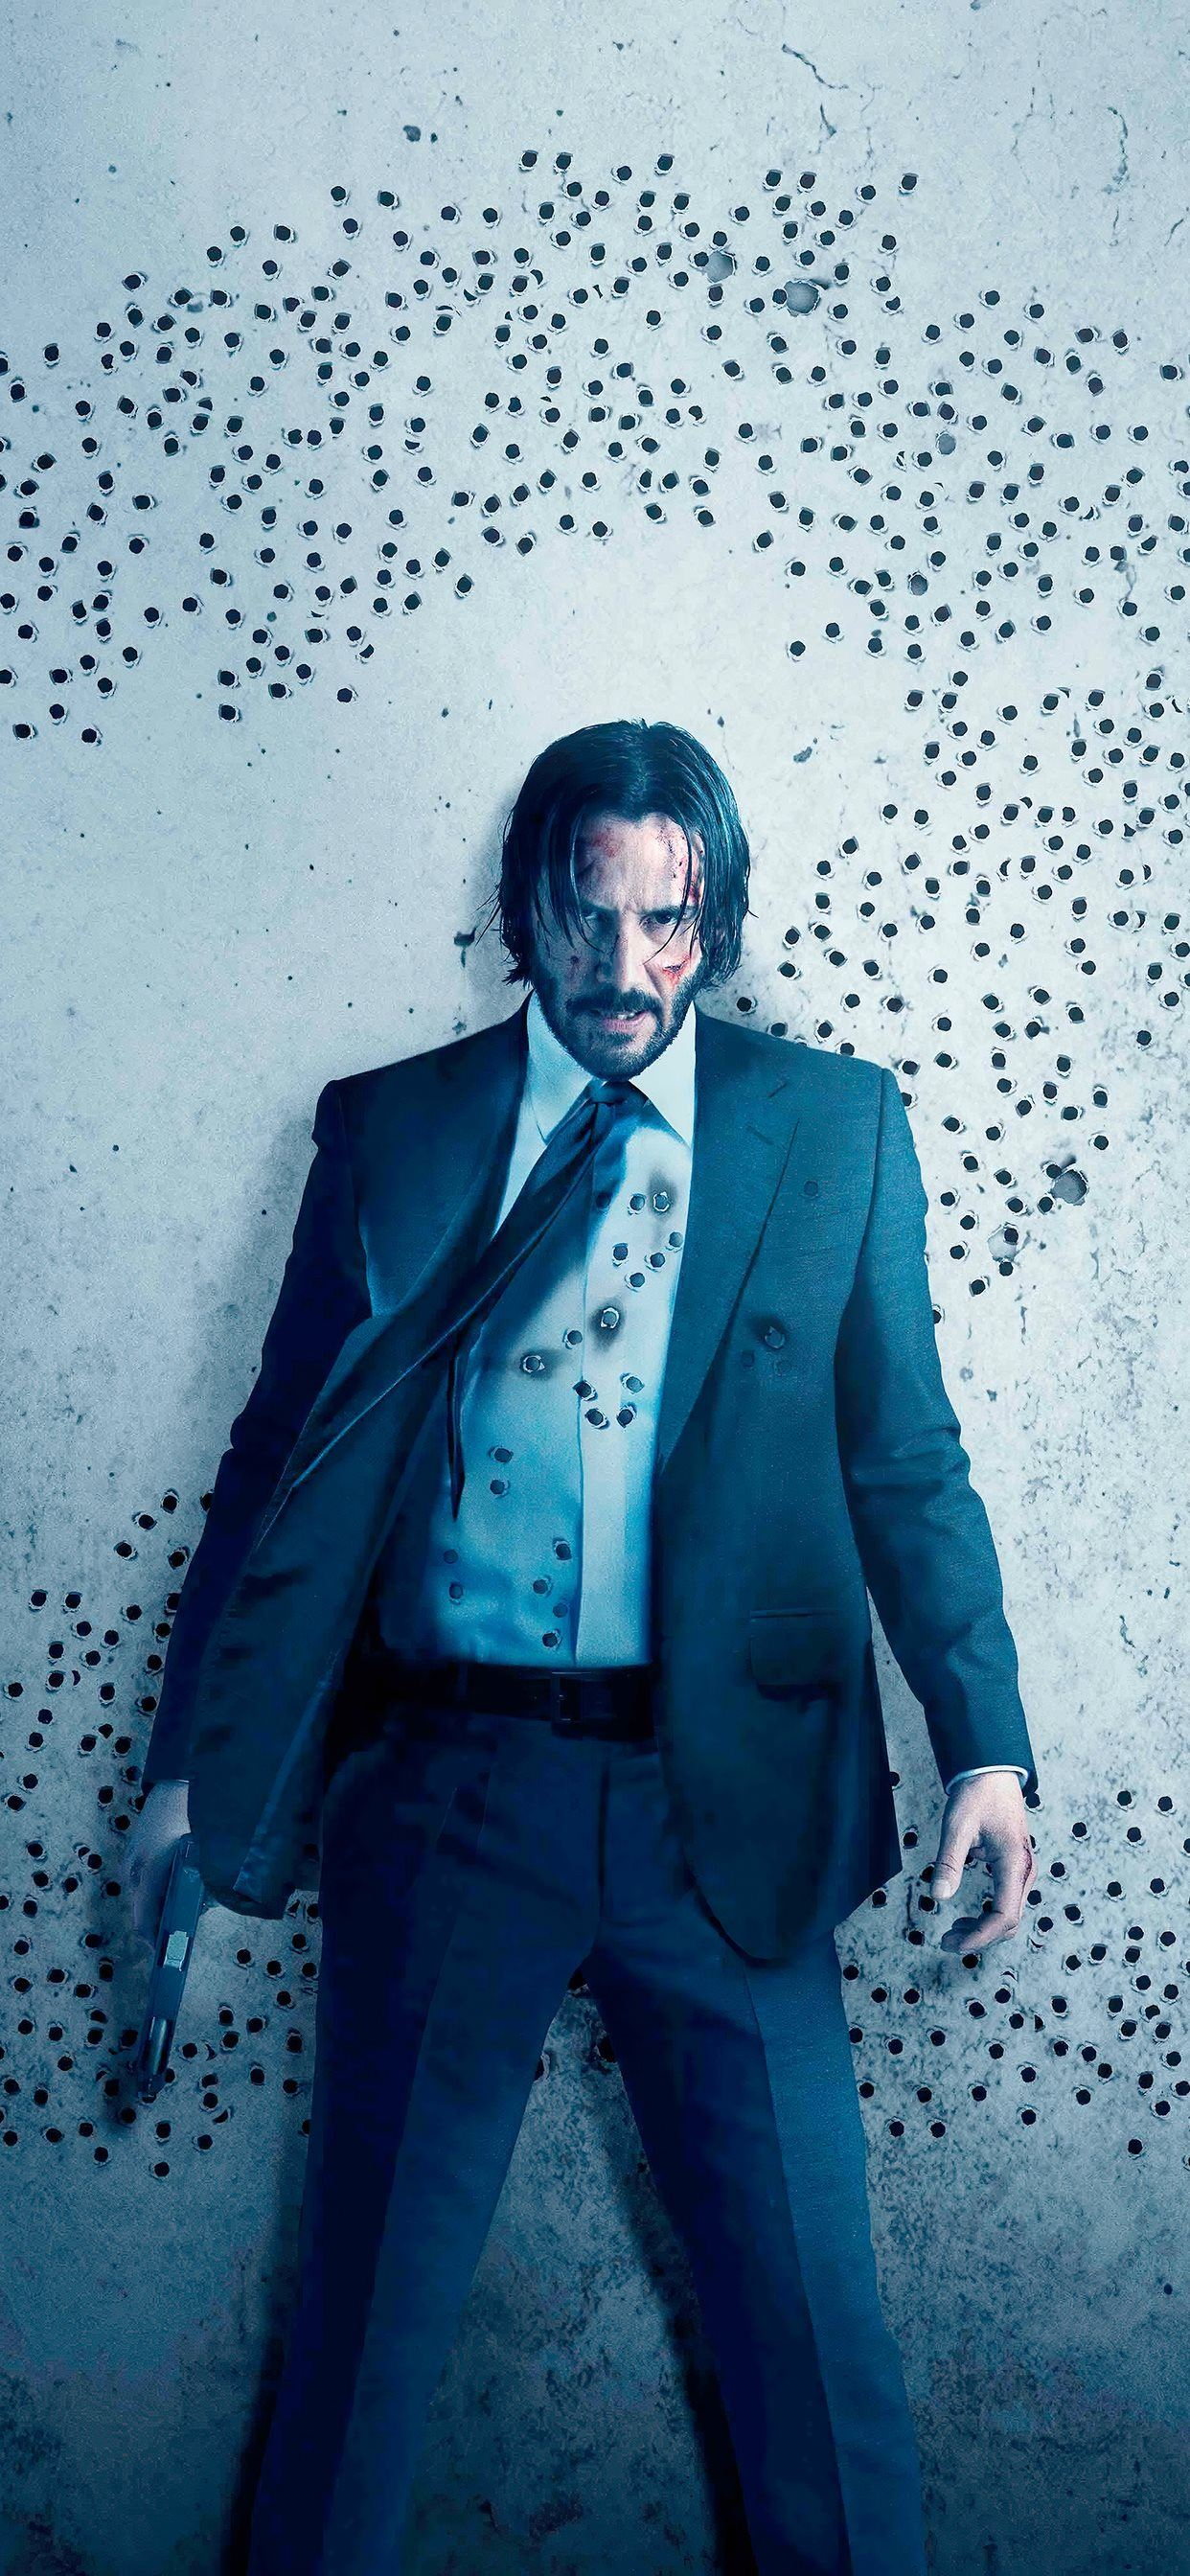 John Wick Chapter 2 4k Iphone Wallpapers Free Download